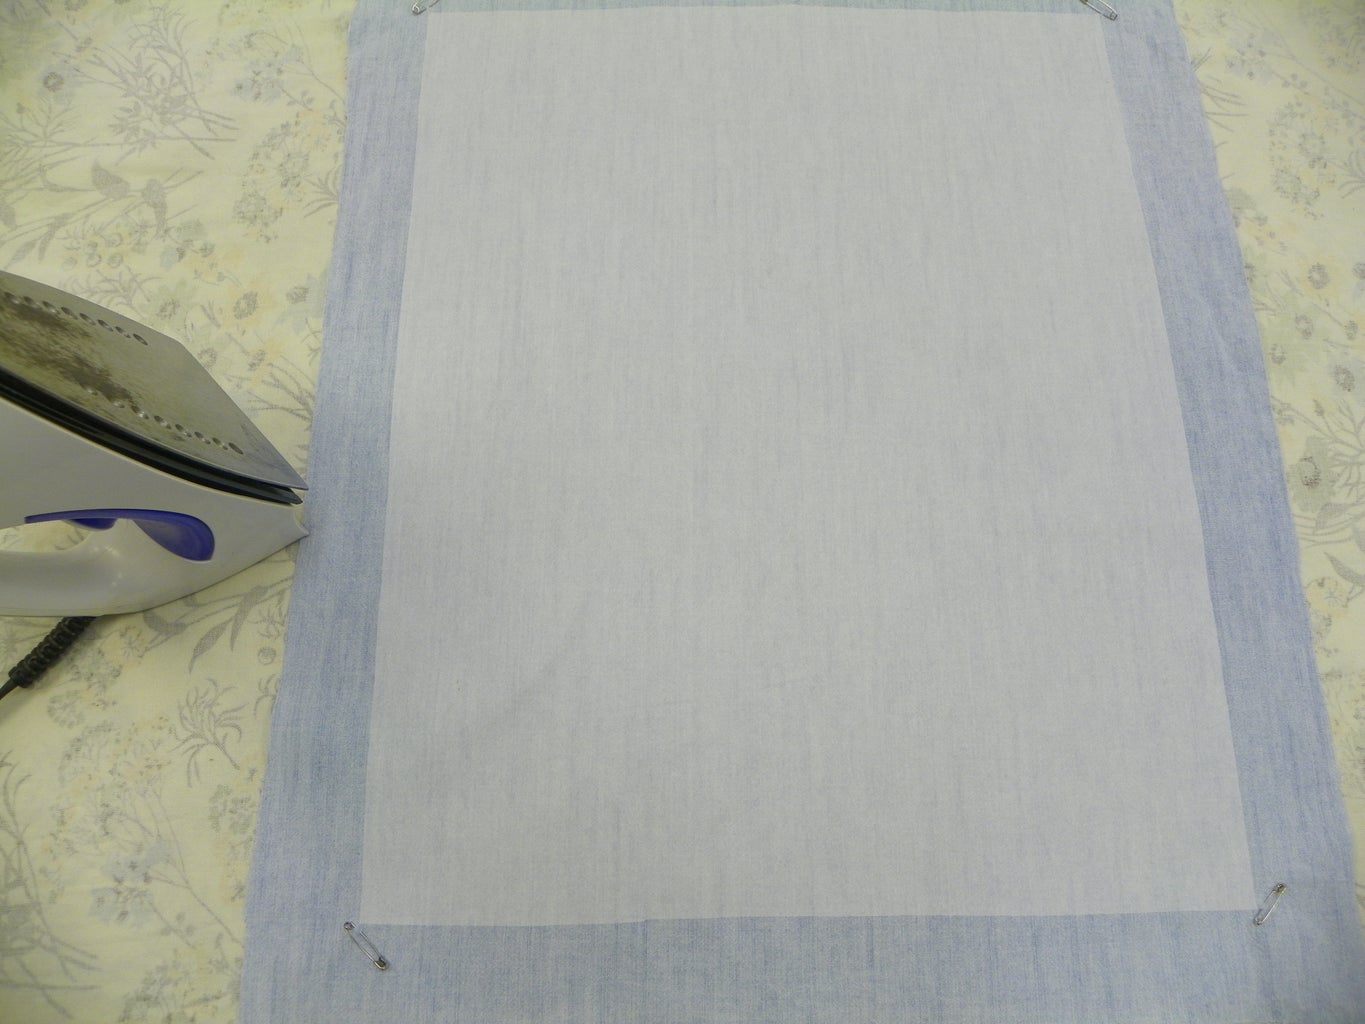 Cutting Up the Fabric